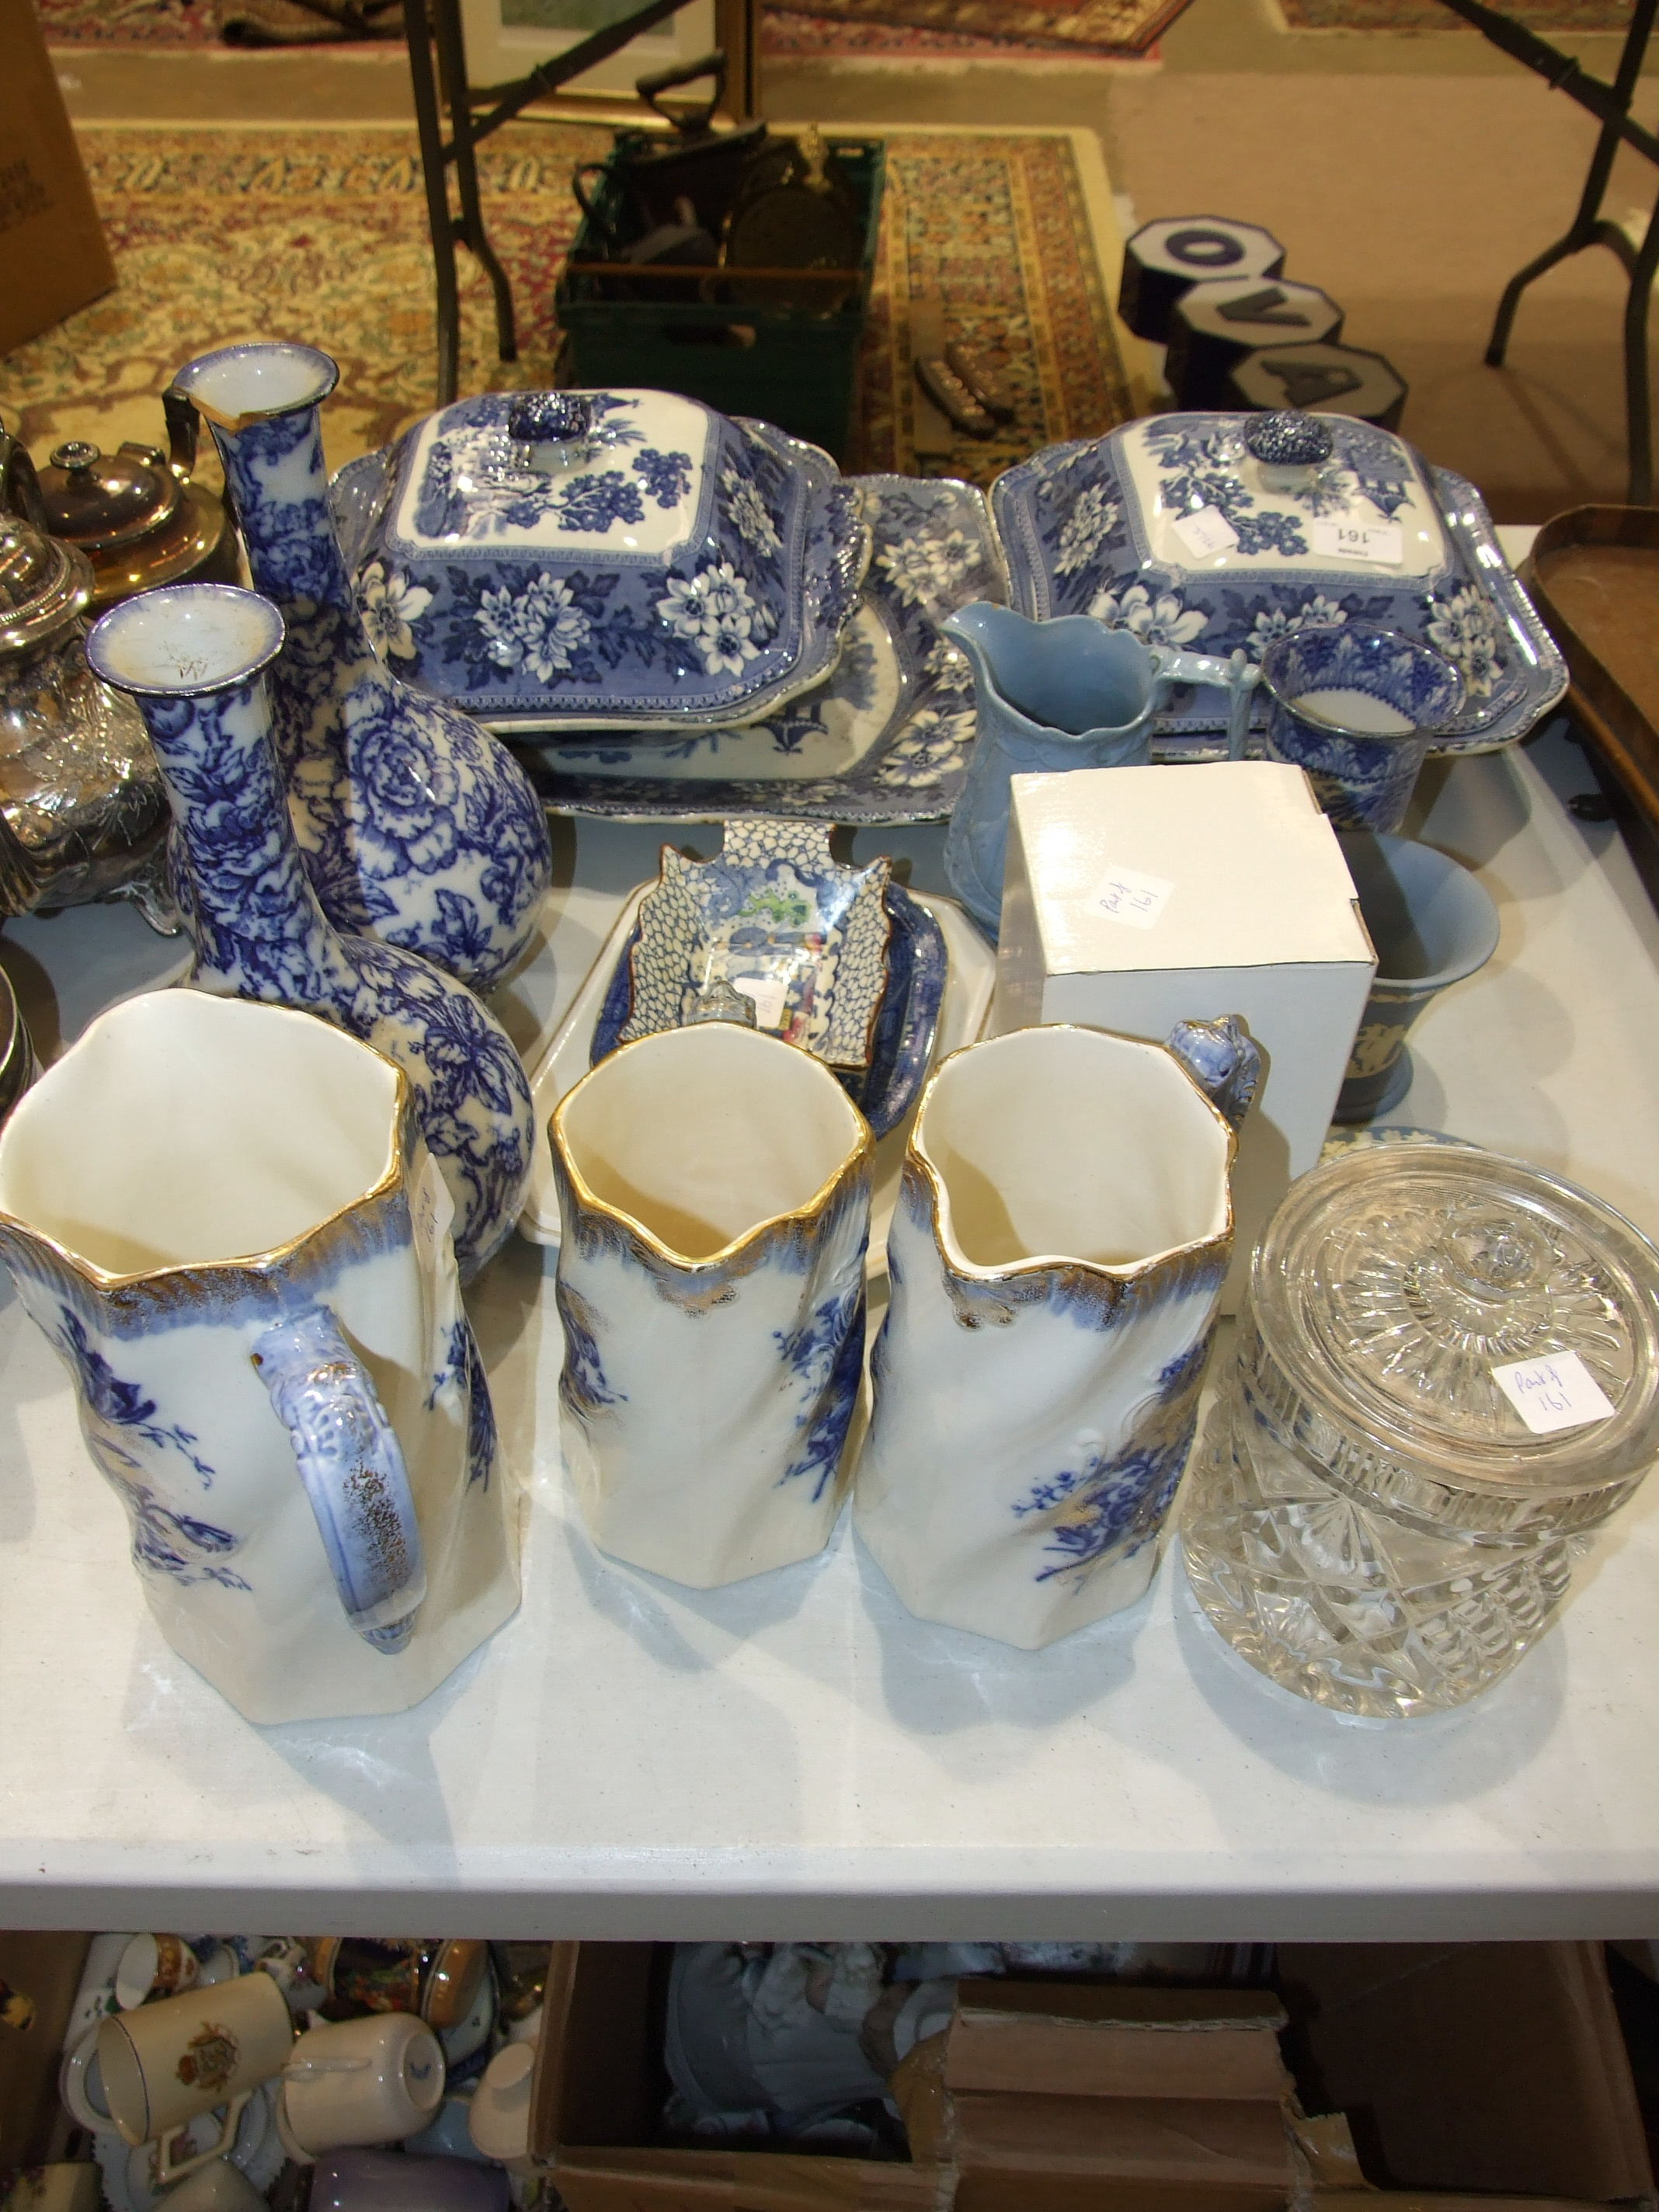 Lot 161 - A pair of blue and white transfer-printed tureens and other ceramics, glass and miscellaneous